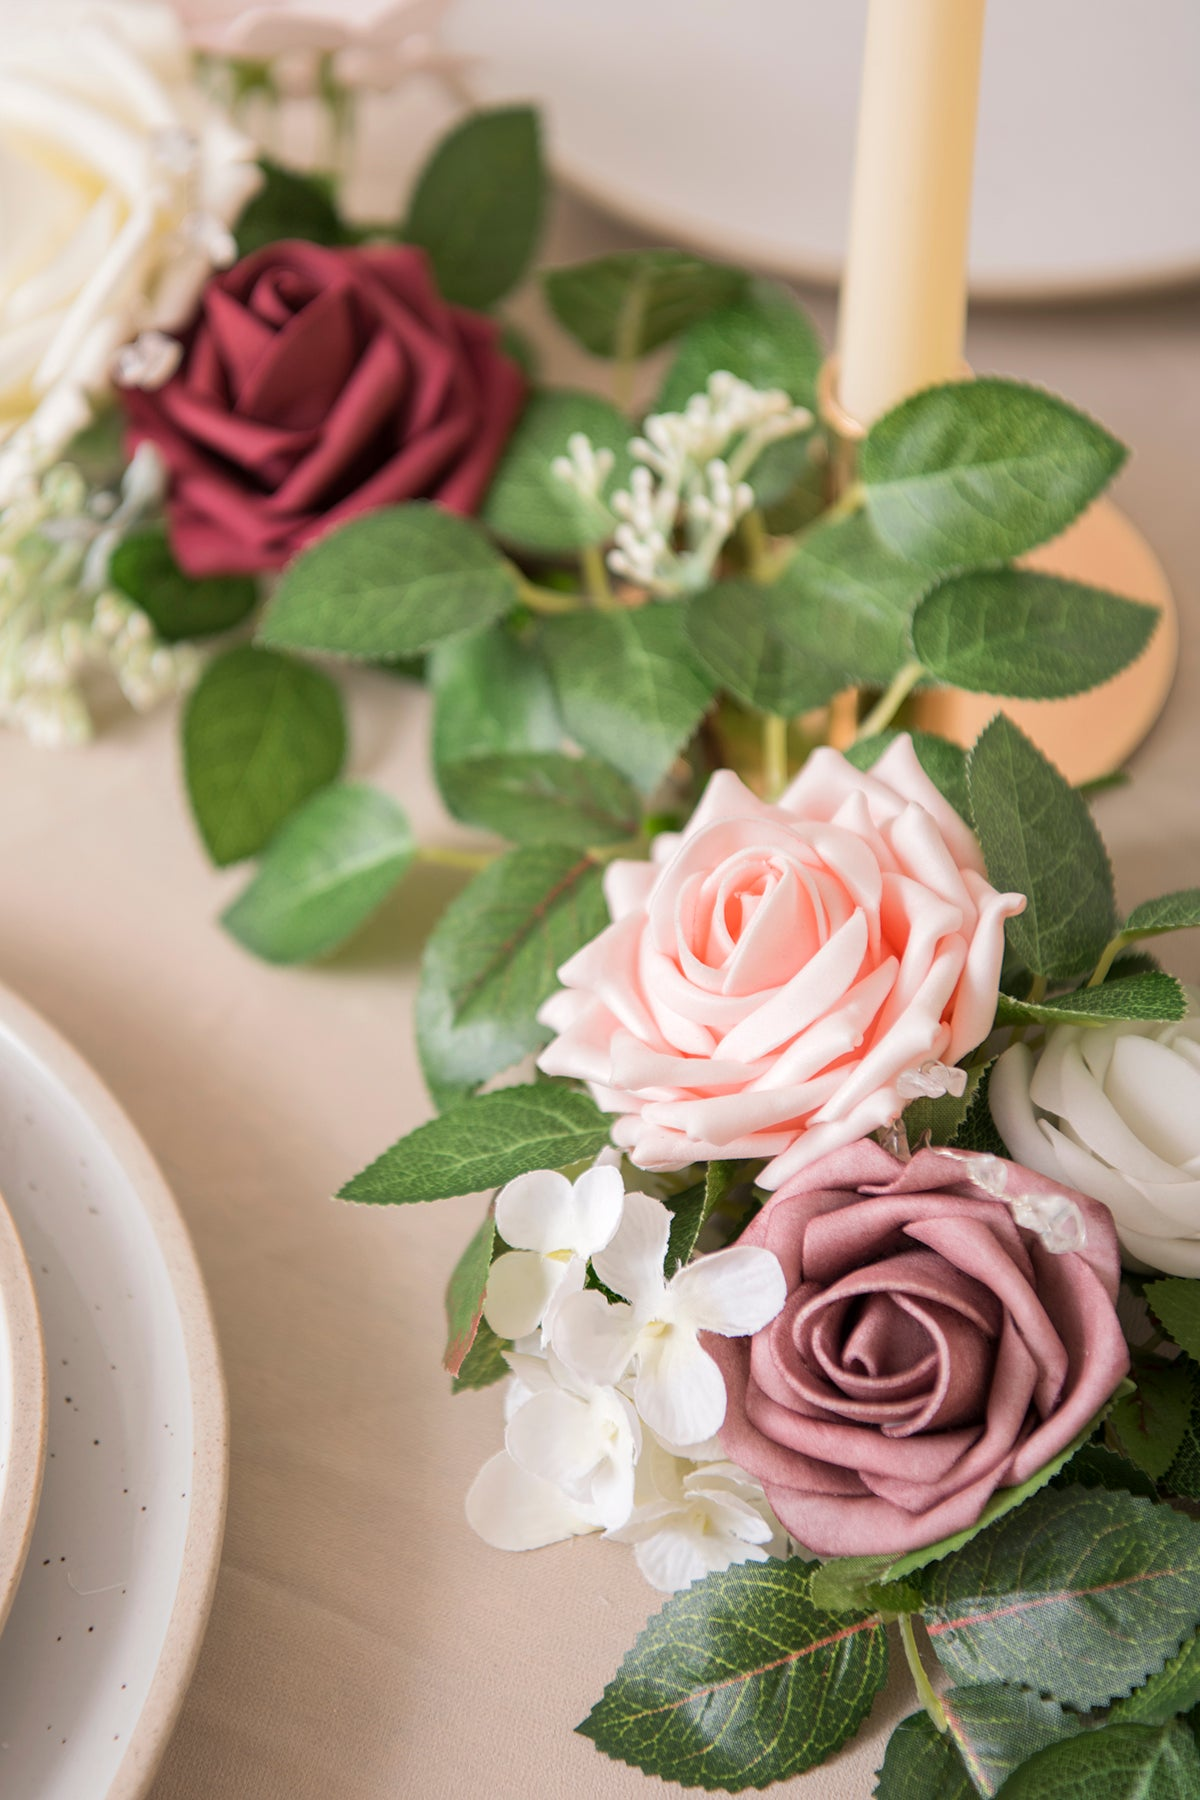 Handcrafted Fluffy Rose Vine Garland - Ling's moment